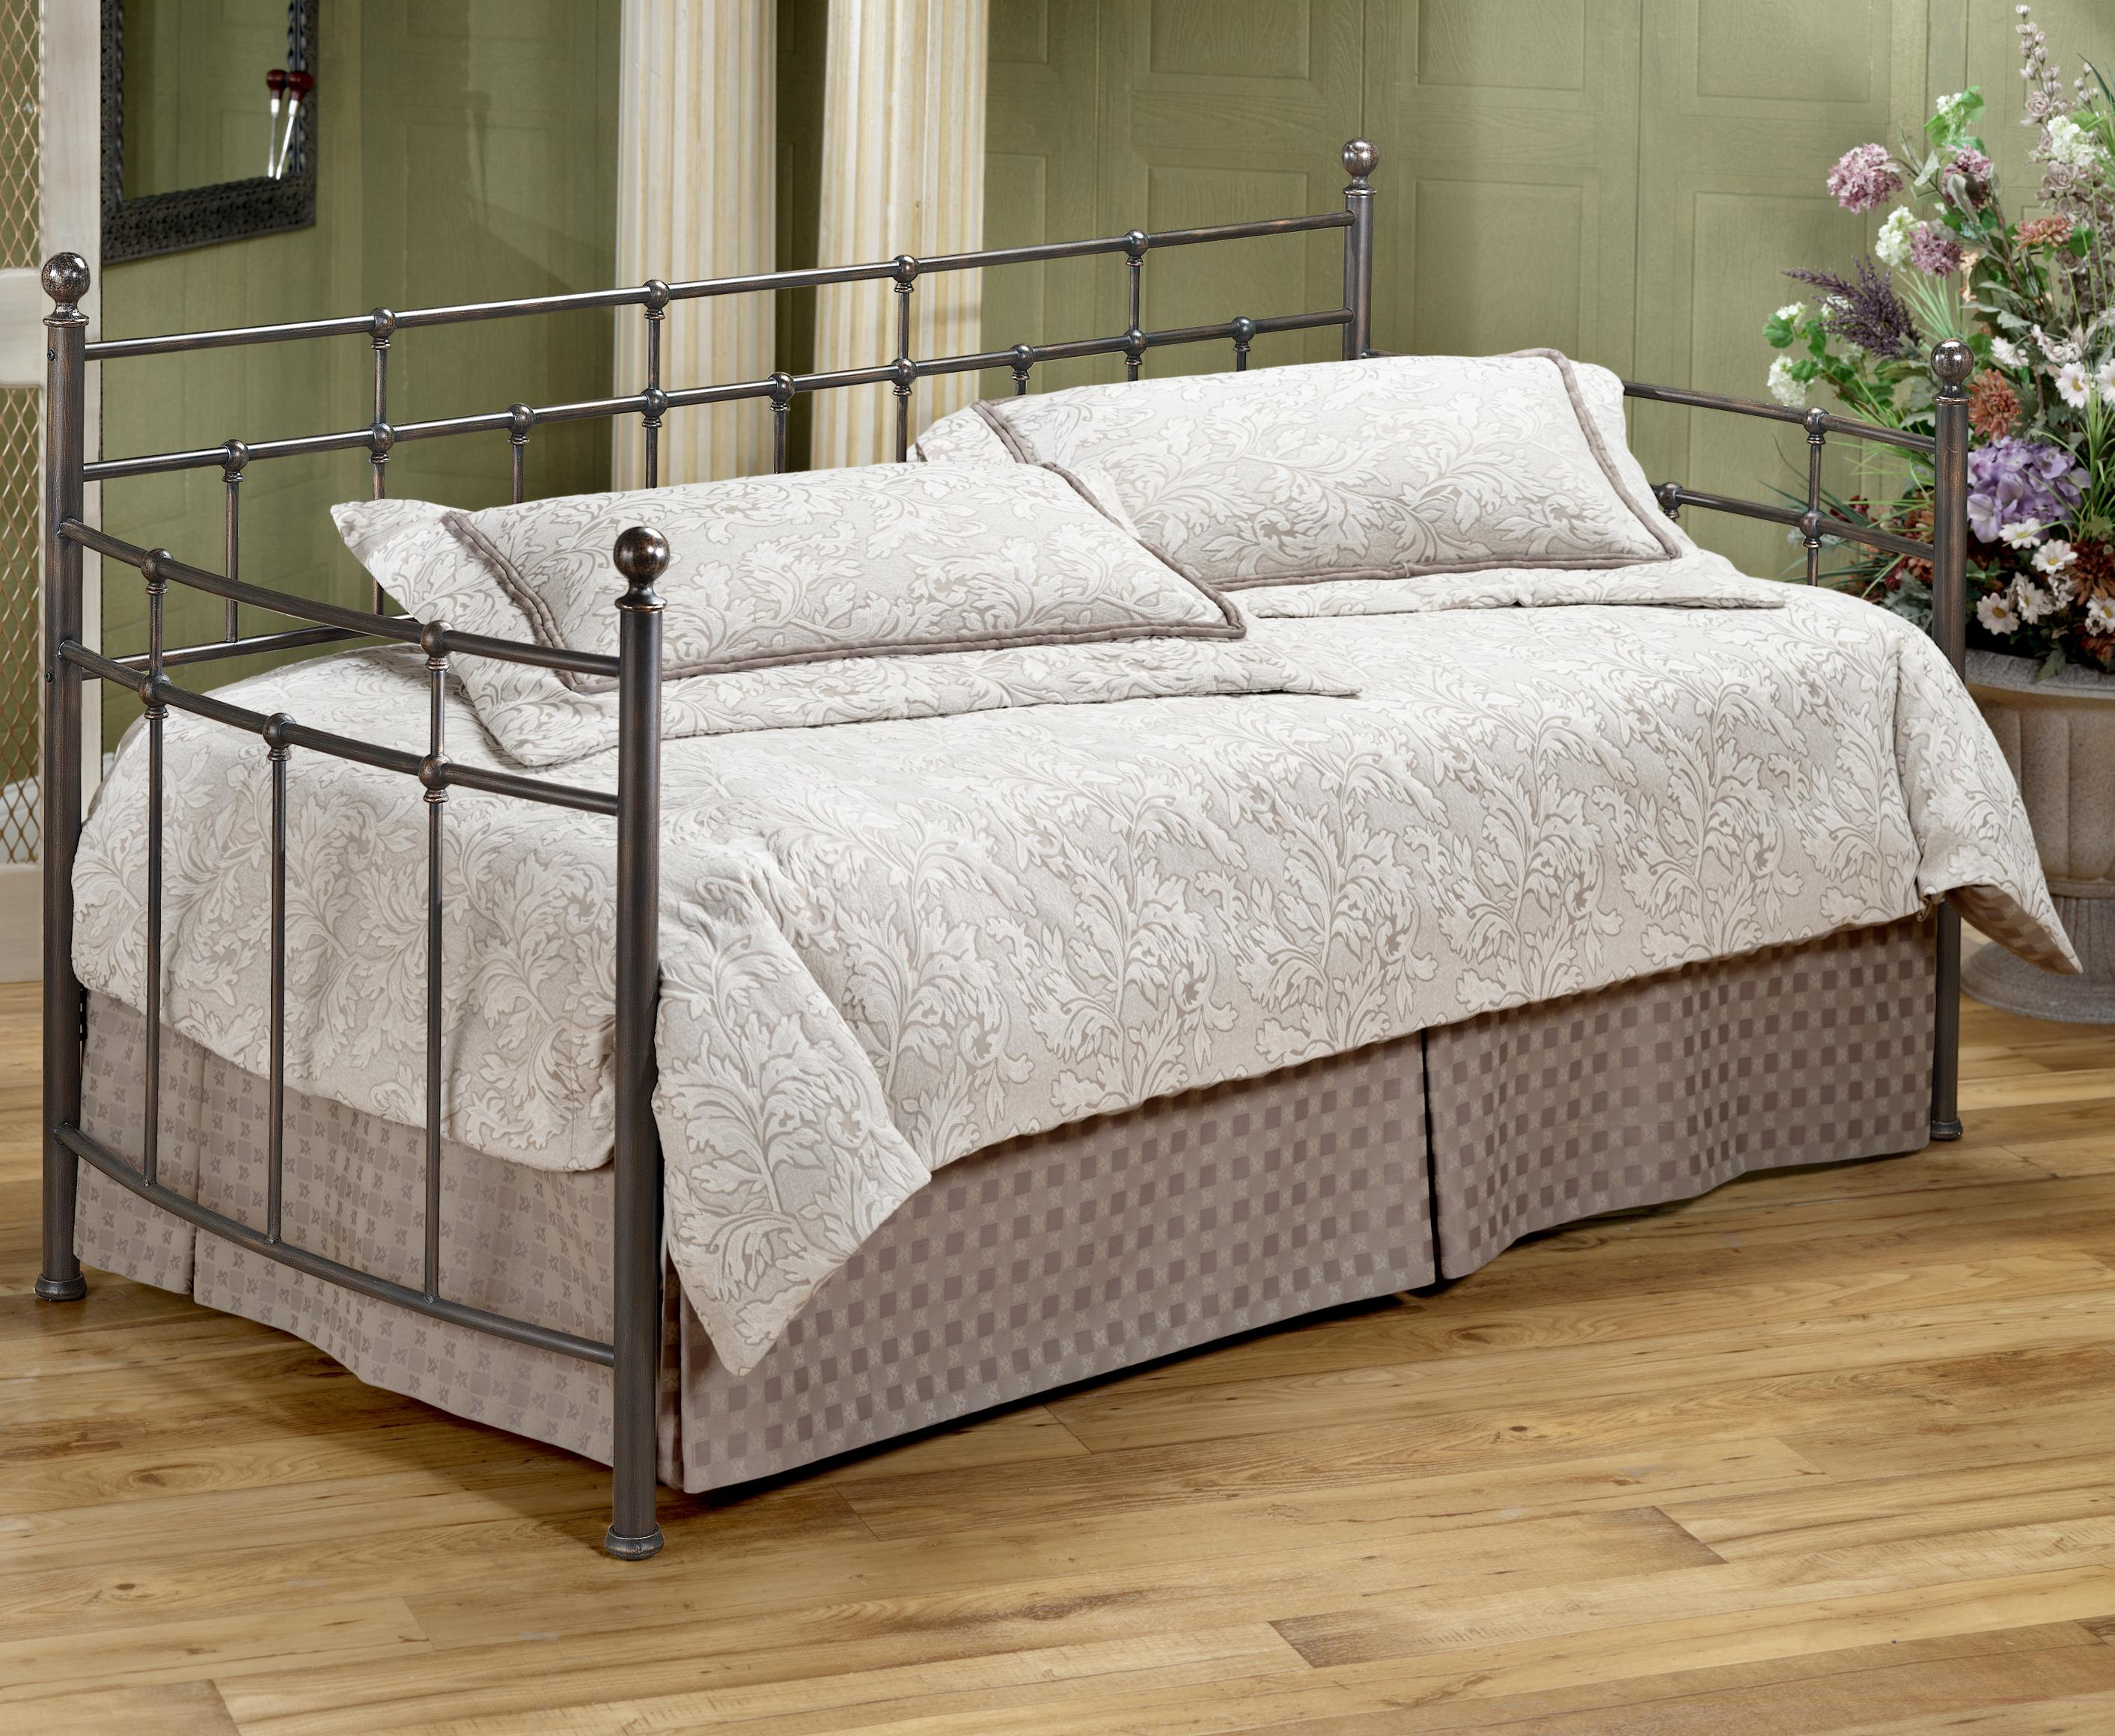 Hillsdale Daybeds Twin Providence Daybed - Item Number: 380DBLHTR